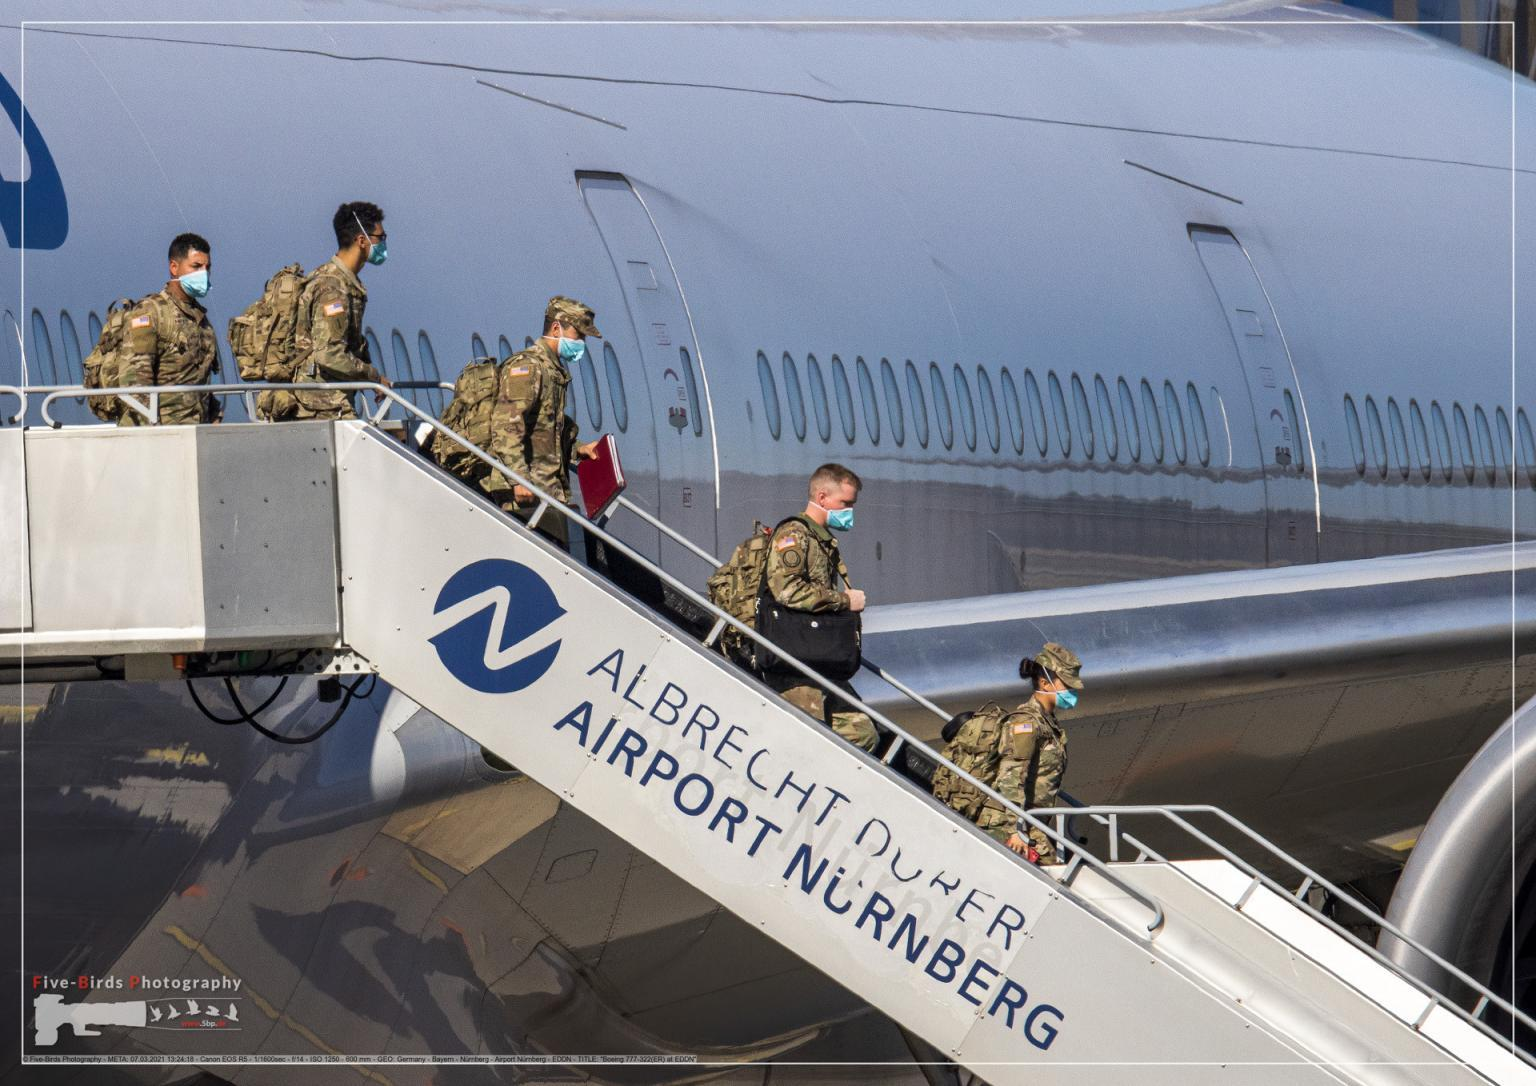 US troops are deboarding from a special flight at the Albrecht Duerer Airport in Nuremberg in Germany